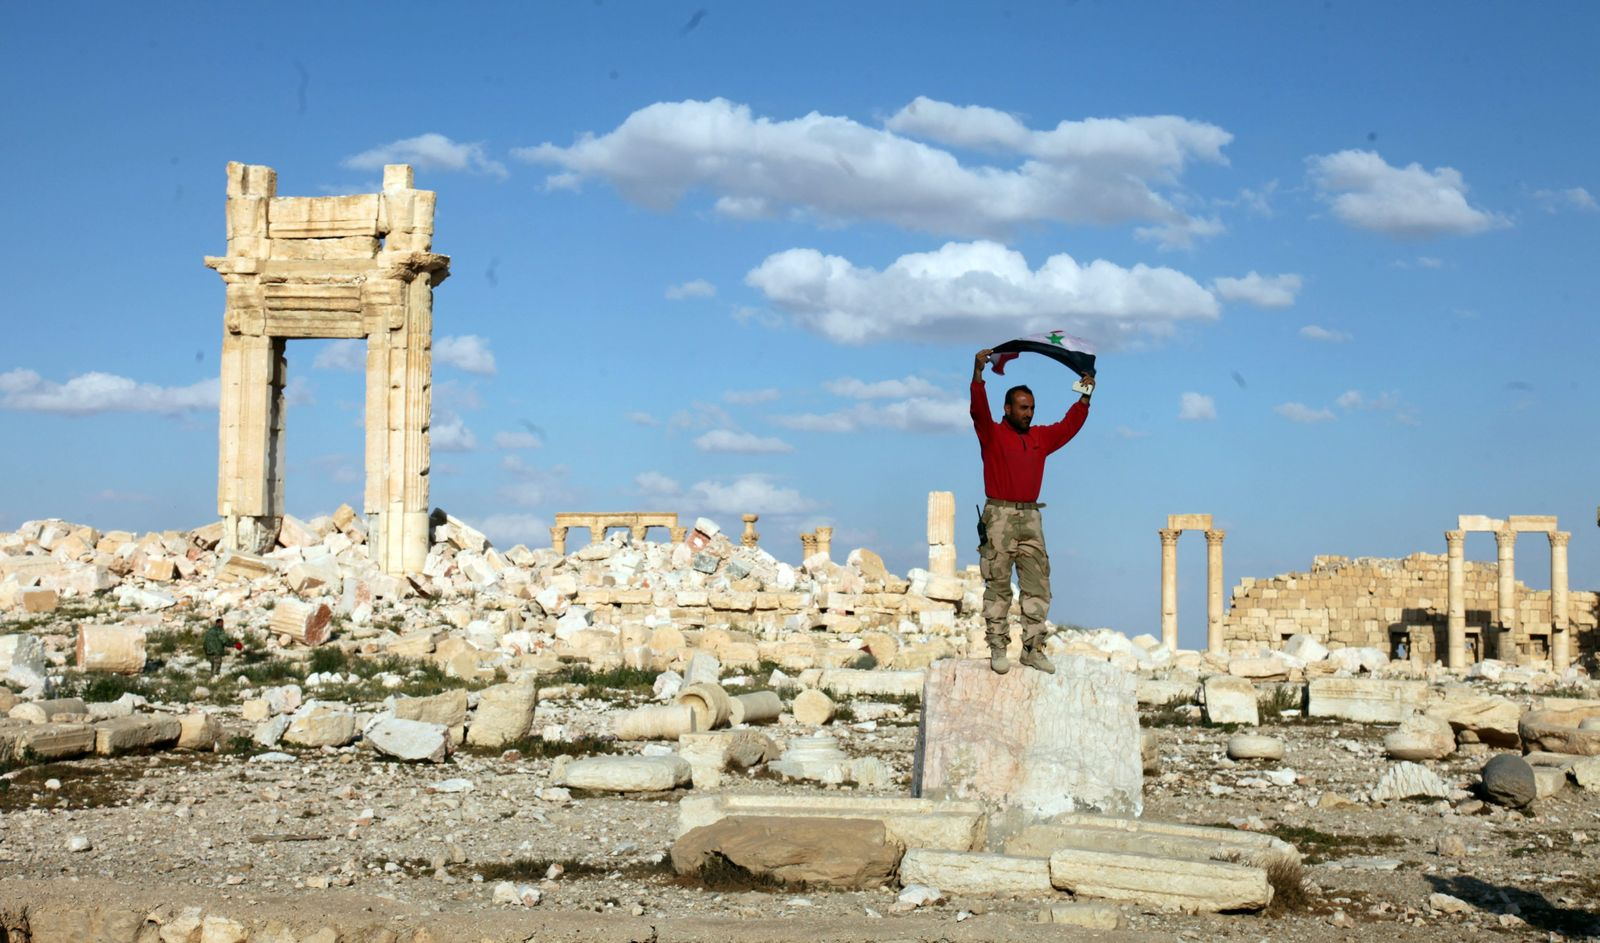 Syrian soldiers inside the historical city of Palmyra